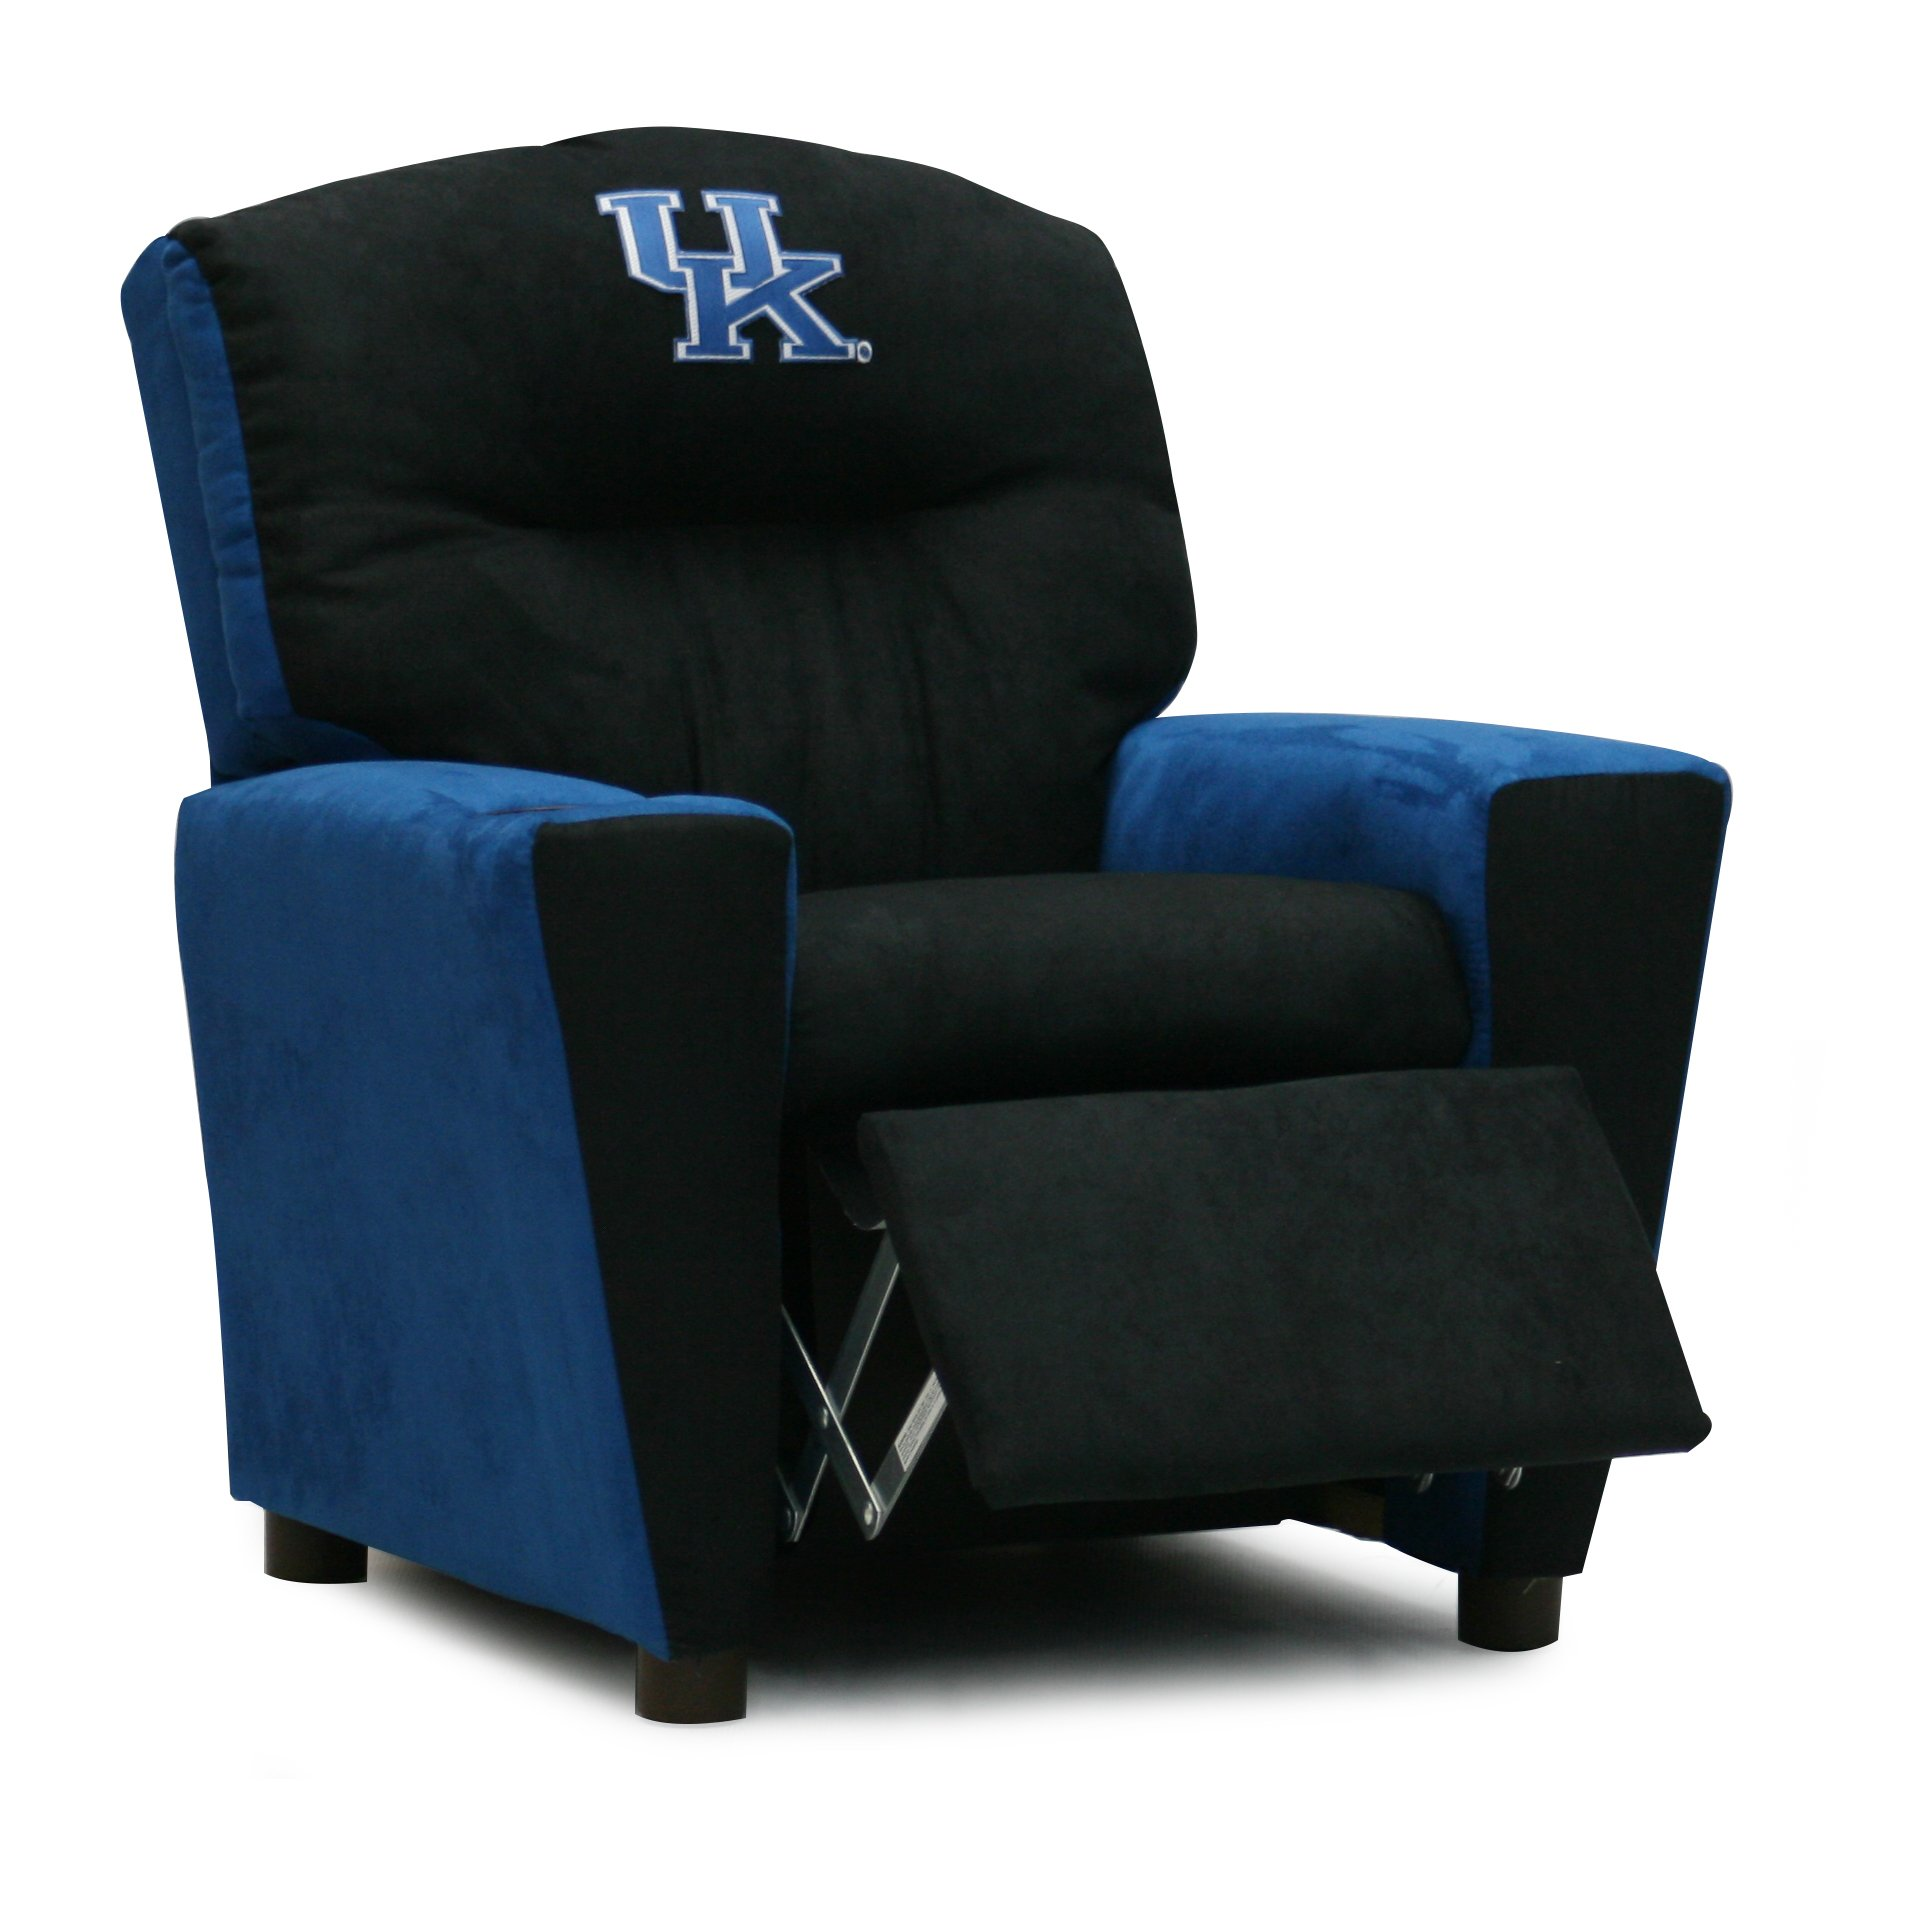 Childrens University of Kentucky Wildcats Recliner Chair With Cup Holder - Upholstered Reclining Armchair For the Young Sports Fan by ASPEN TREE INTERIORS (Image #2)